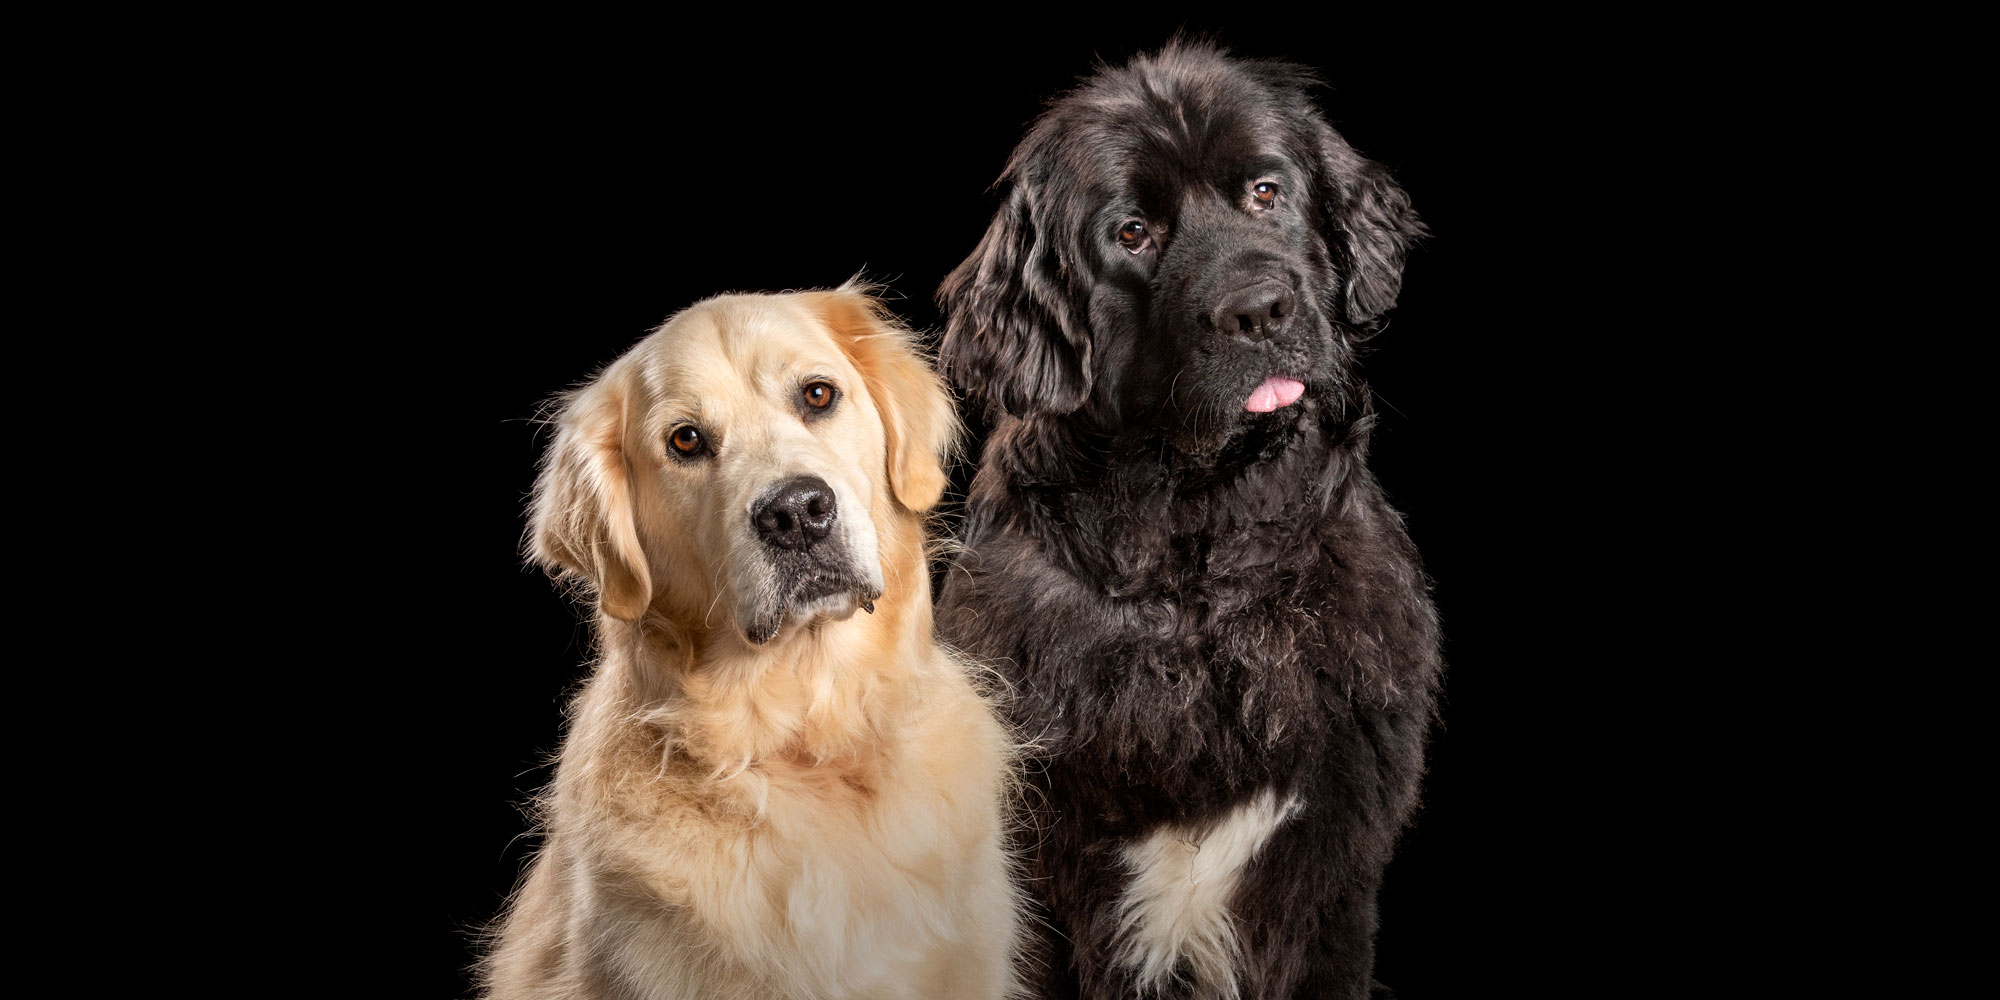 best fur-pals golden retriever boy and black girl newfoundland